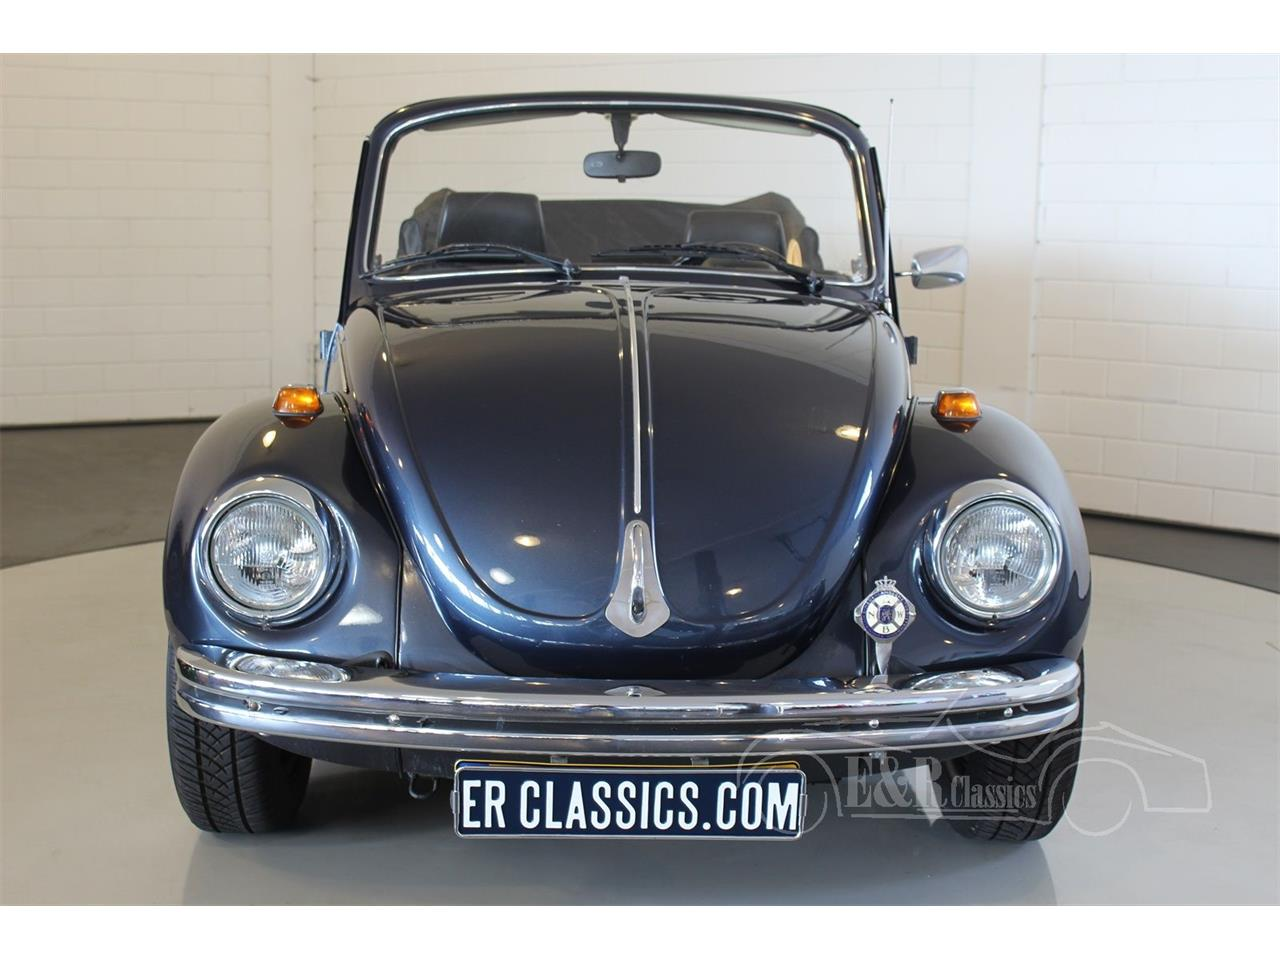 Large Picture of '74 Beetle located in Noord Brabant - $27,500.00 Offered by E & R Classics - MNPO